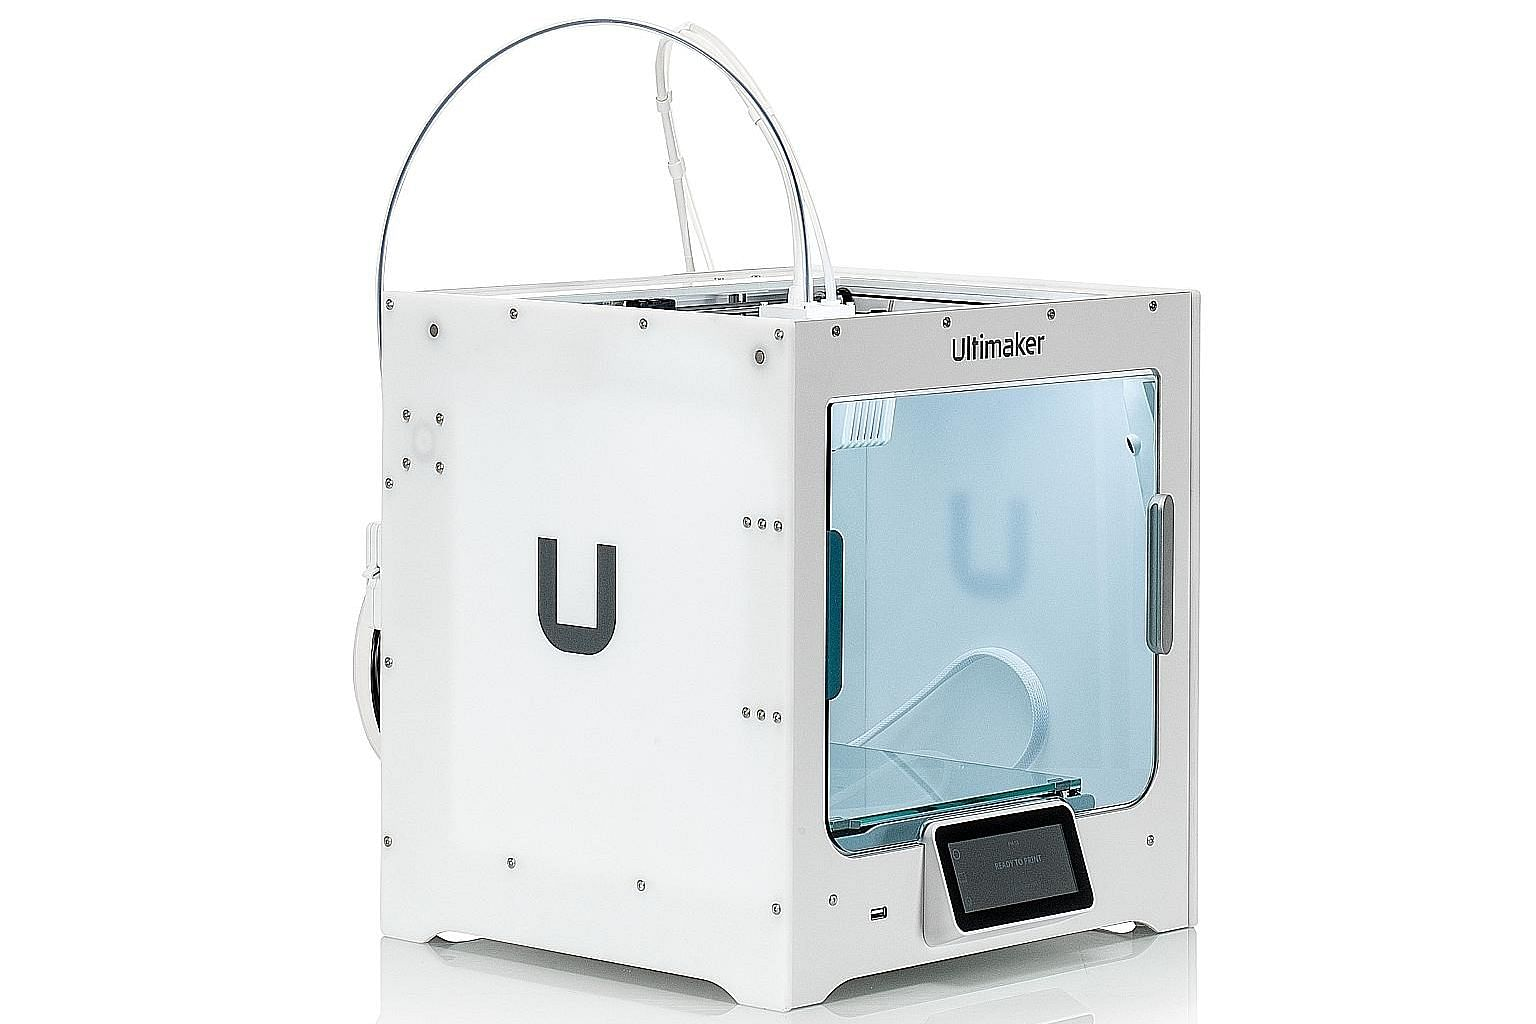 Ultimaker's S3 3D printer allows users to make objects in two colours of the same material in a single print job.